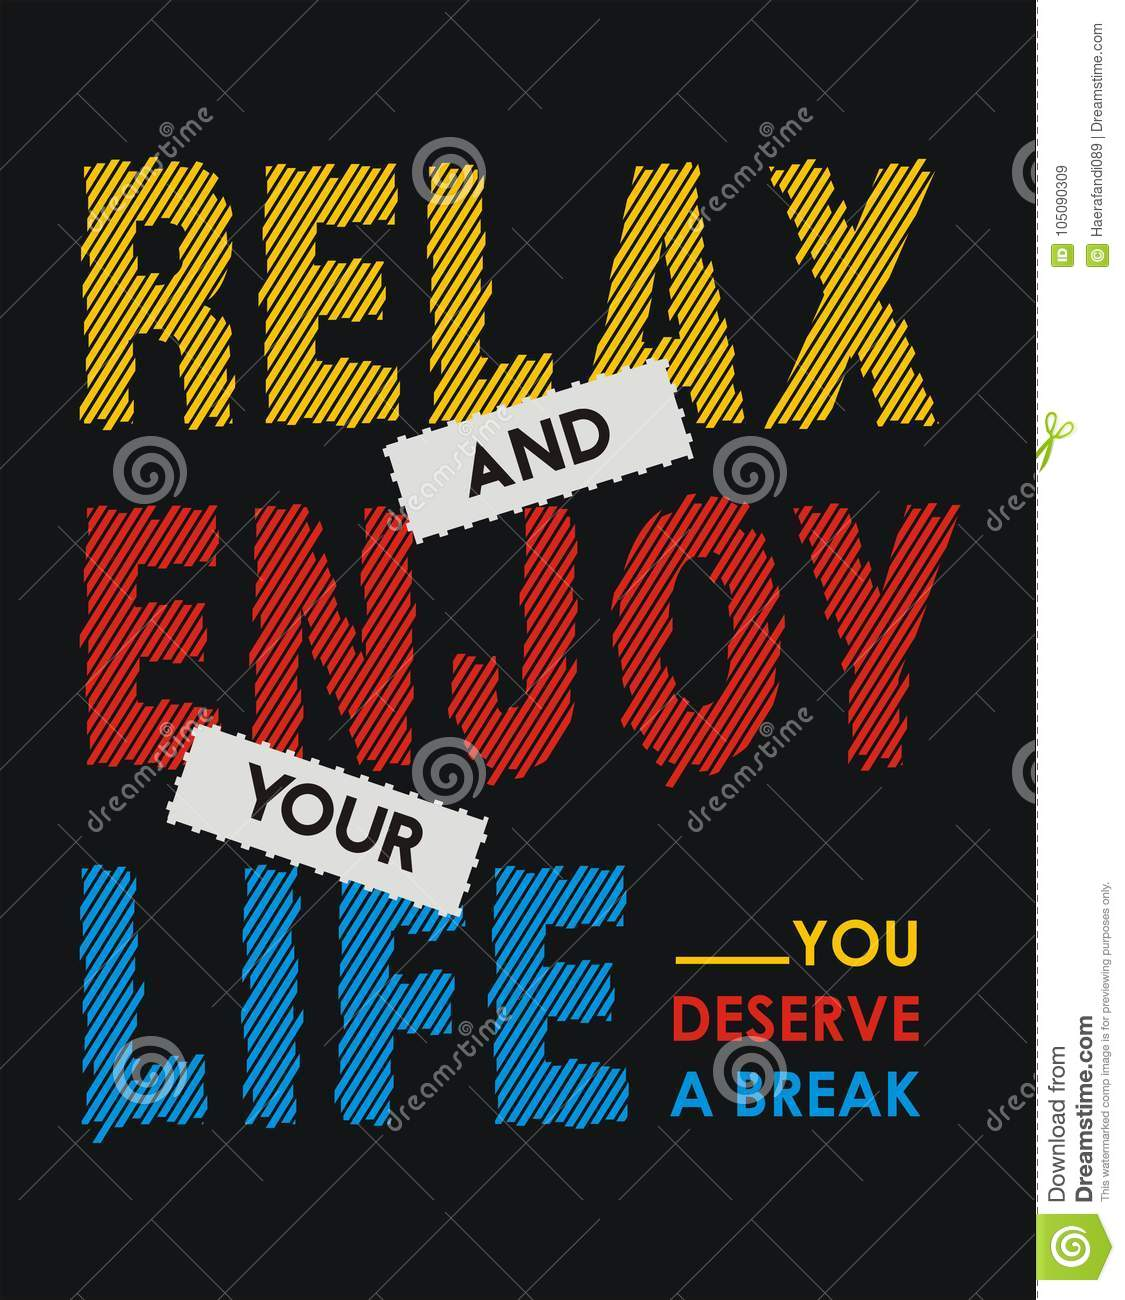 Relax And Enjoy Your Life You Deserve A Break Vector Image Stock